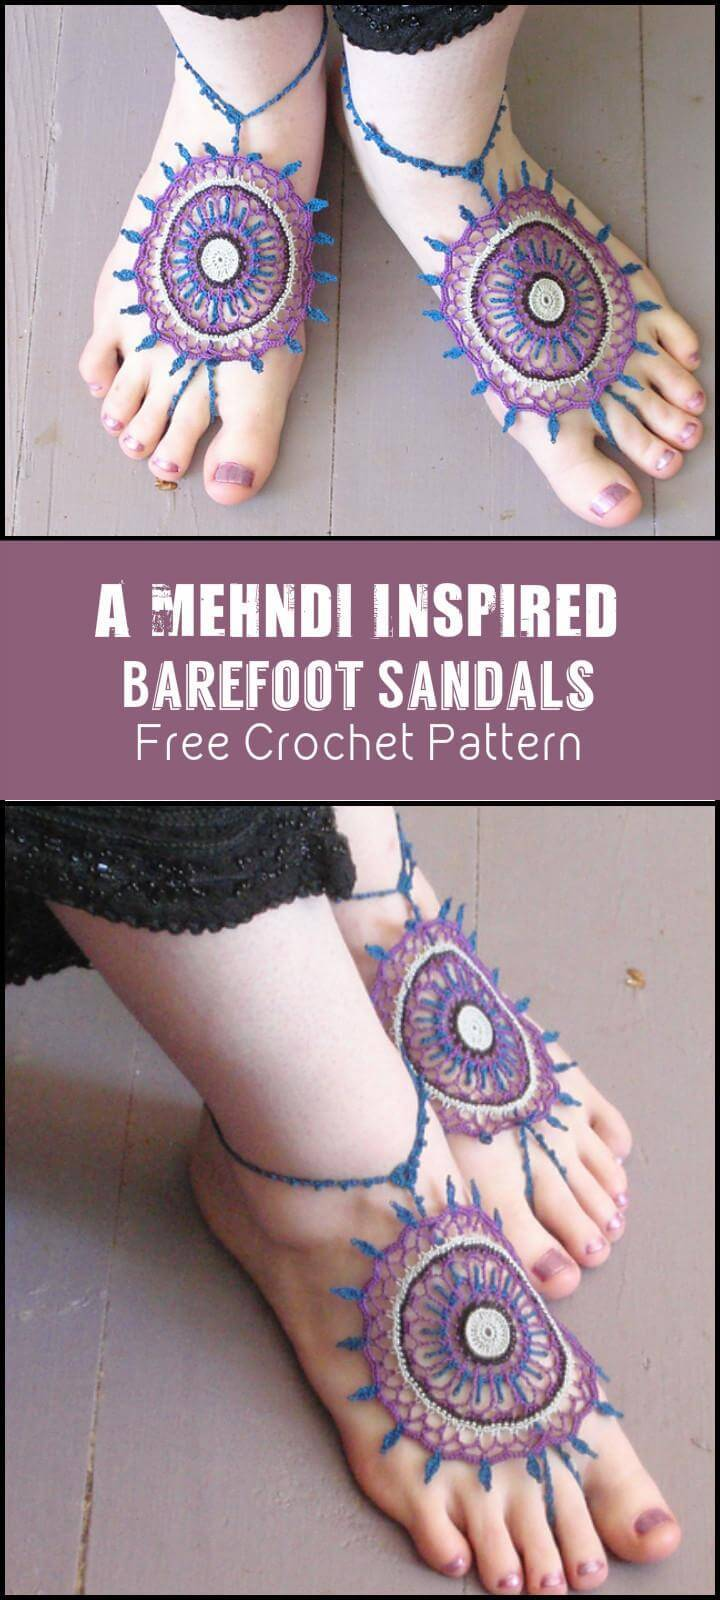 A Mehndi Inspired Barefoot Sandals Free Crochet Pattern